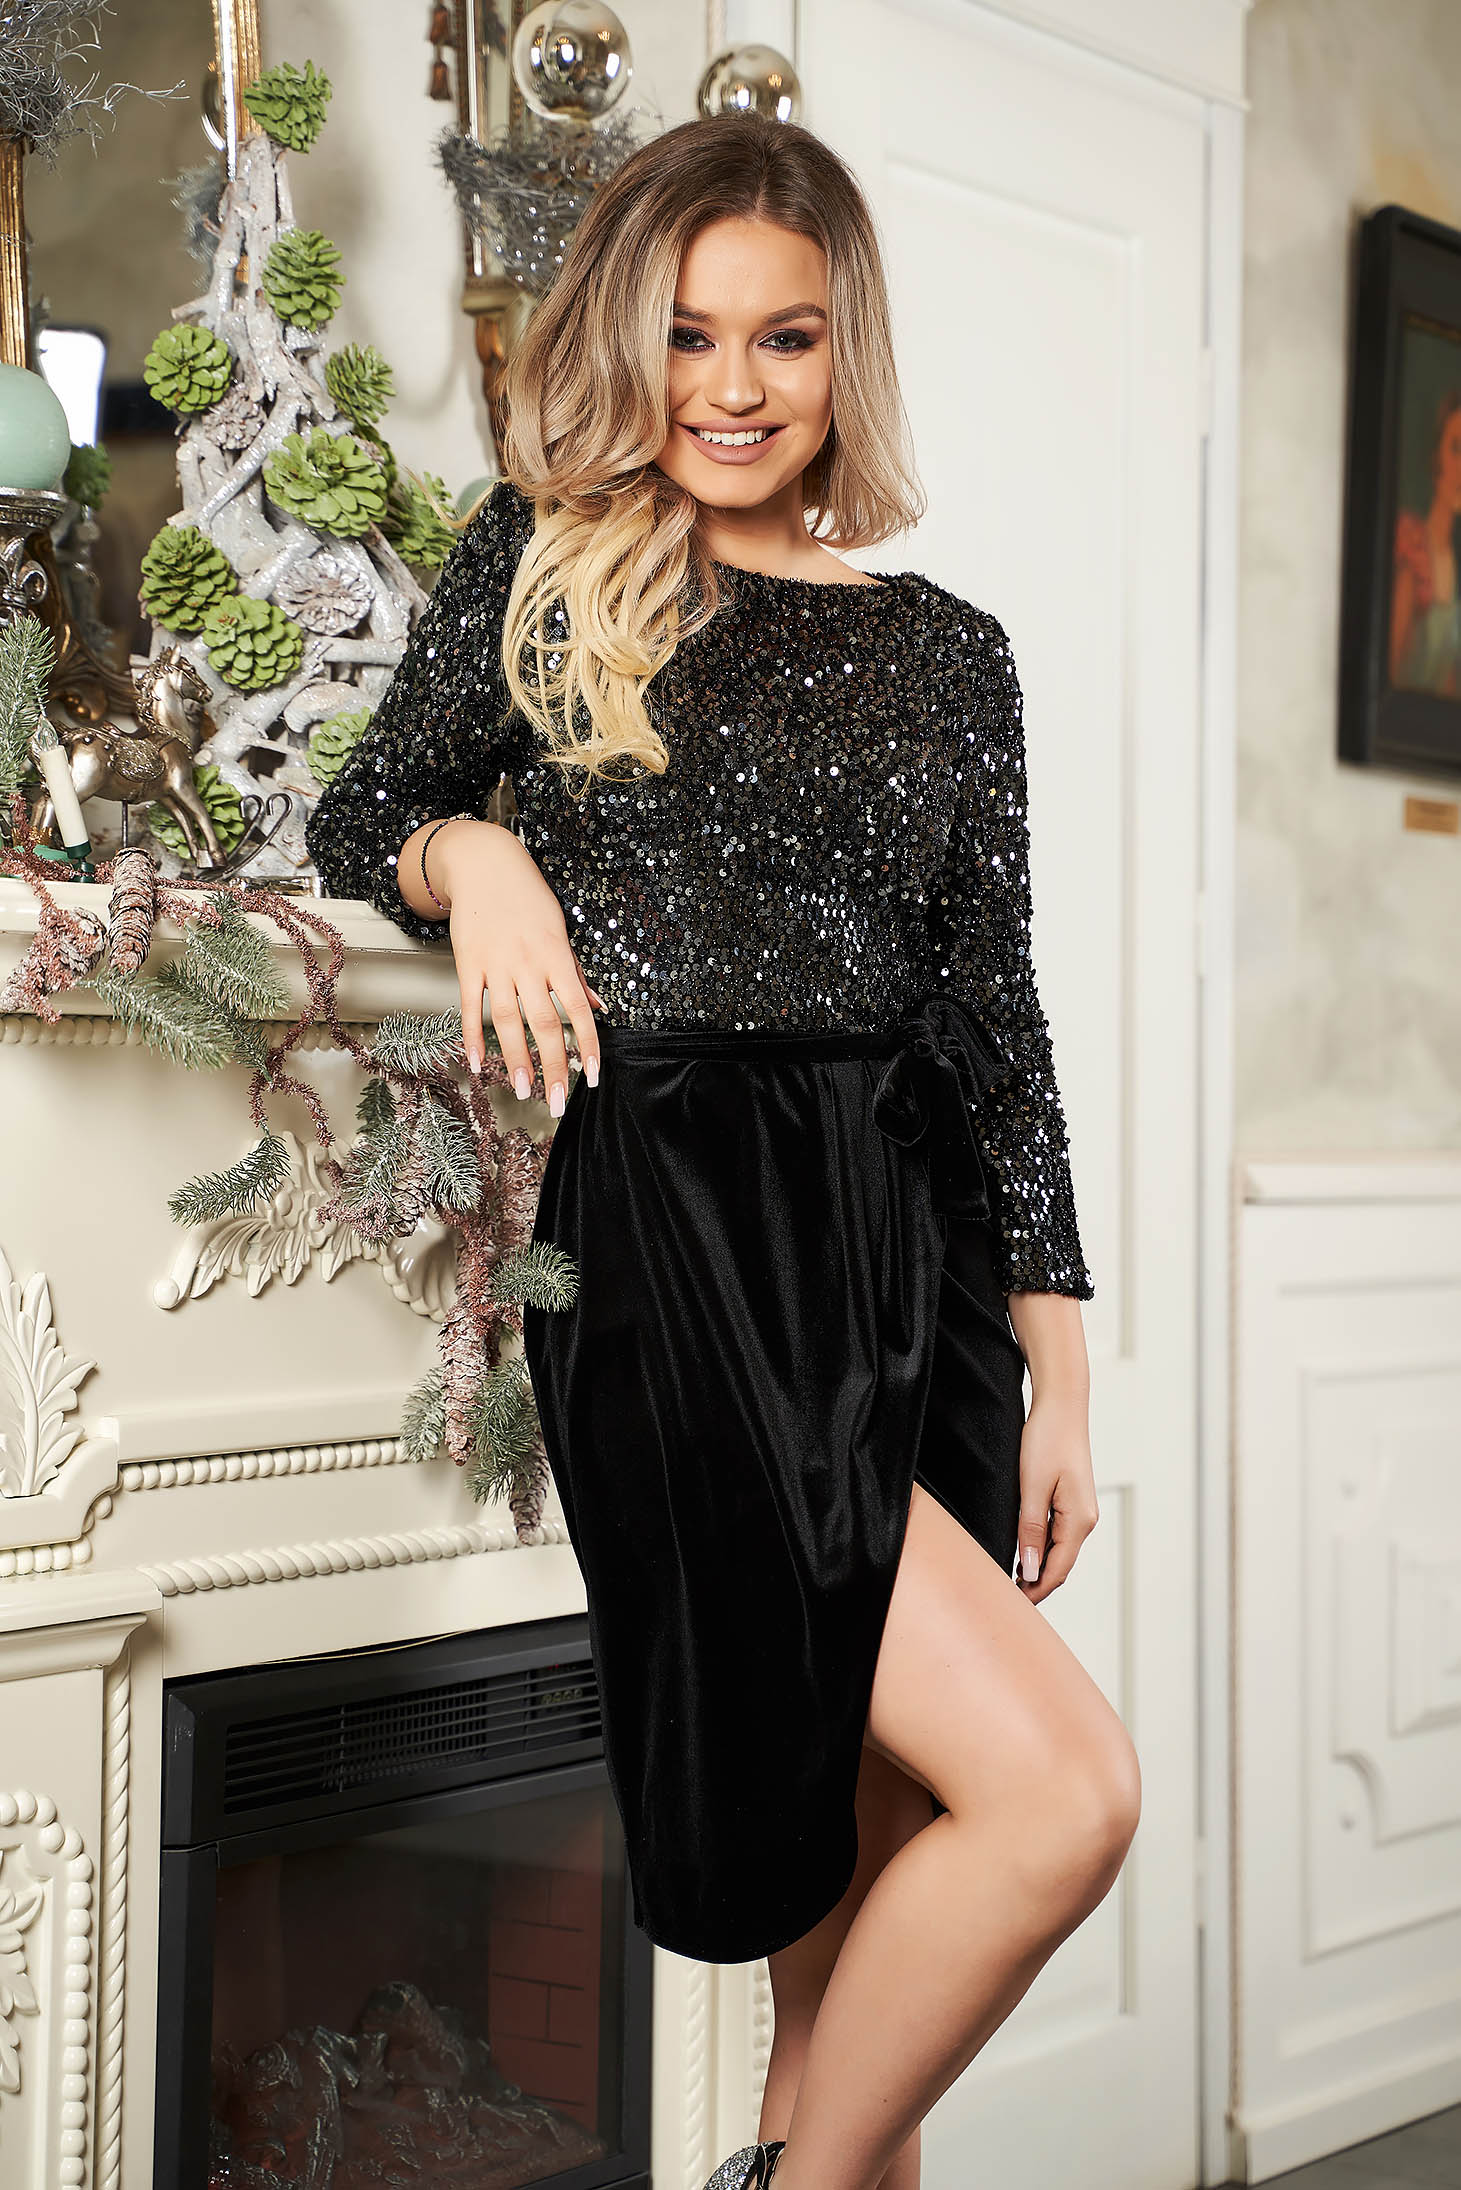 Dress StarShinerS black occasional straight short cut velvet with sequins accessorized with tied waistband